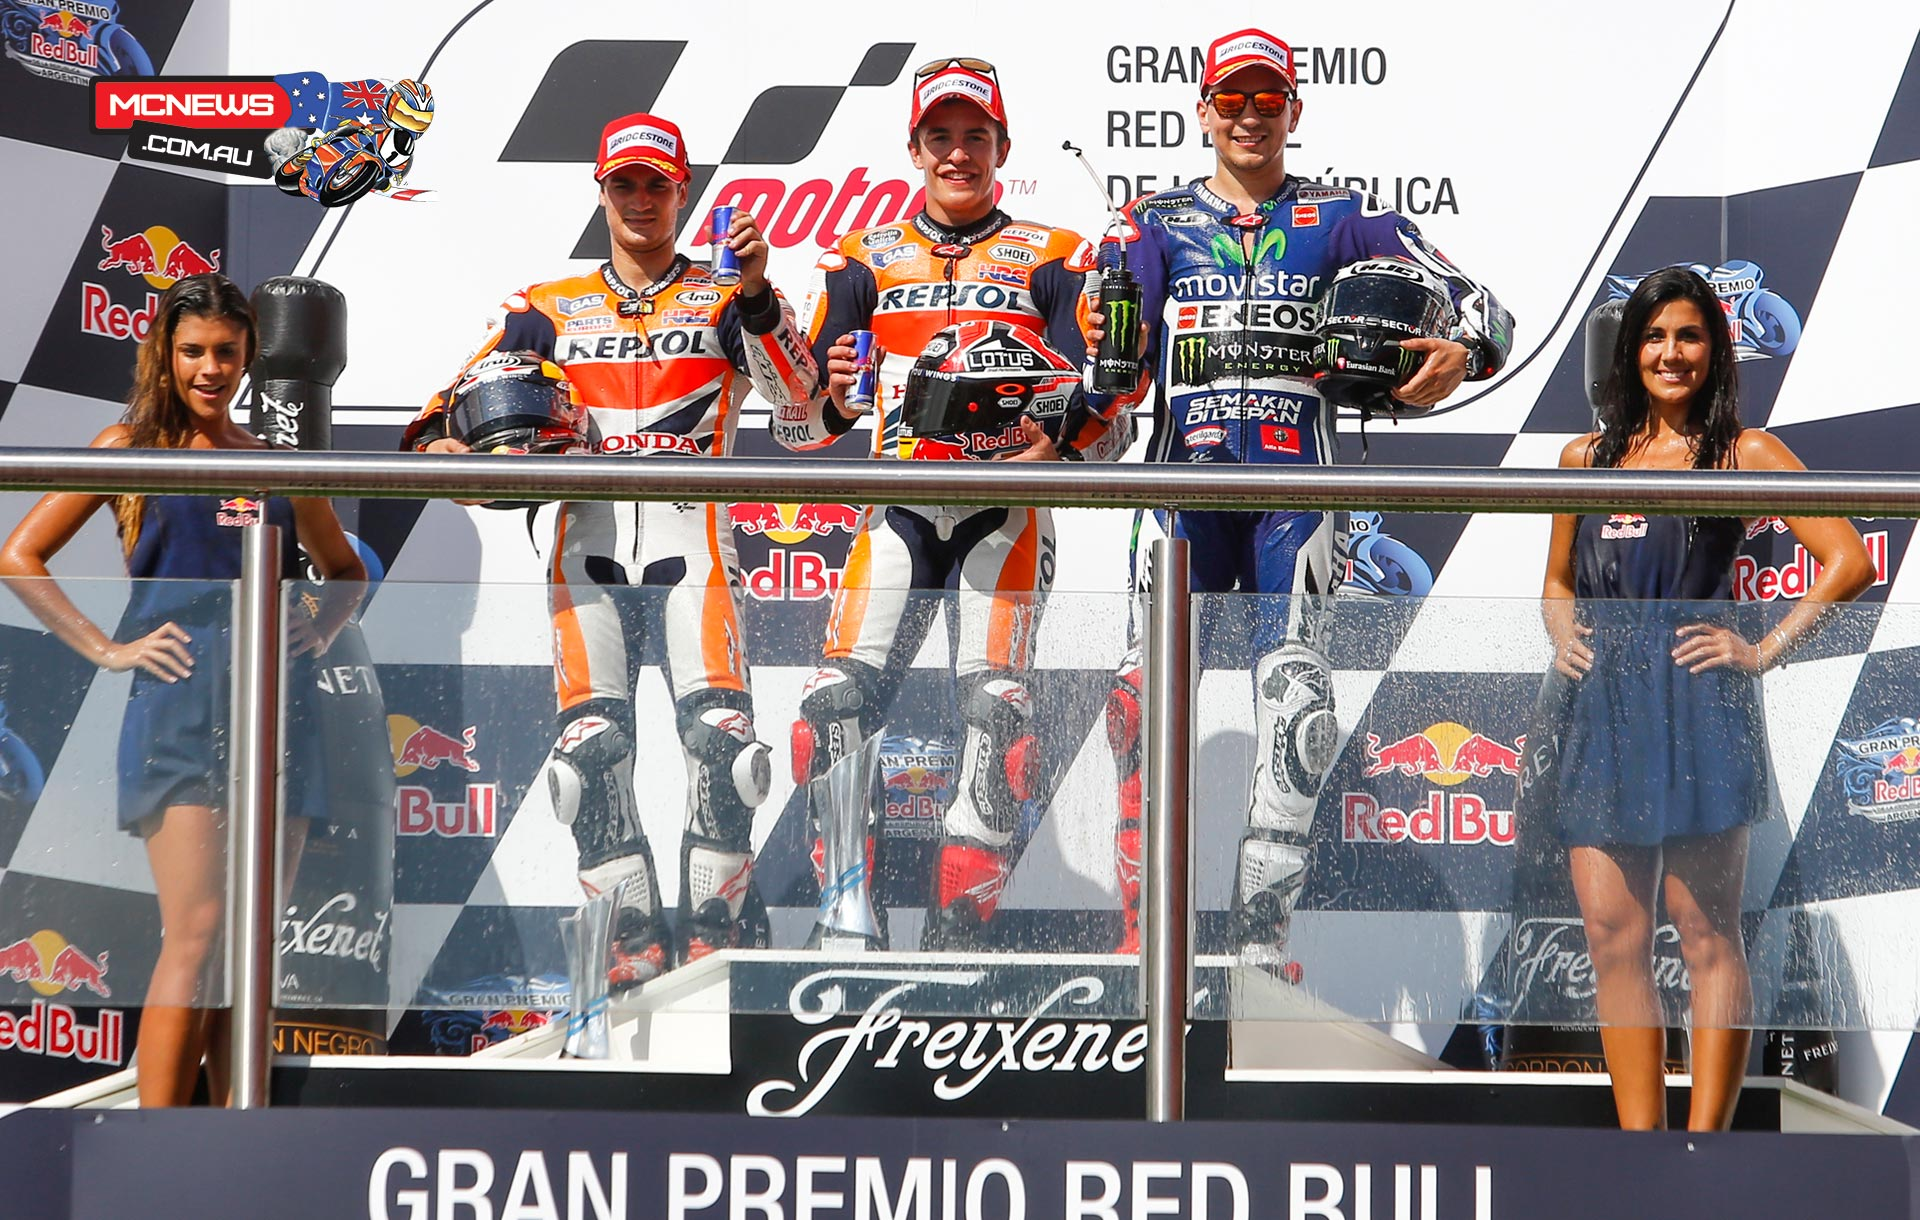 An enthralling 2015 MotoGP race at the Gran Premio Red Bull de la Republica Argentina saw Marc Marquez clinch his third win of the year, ahead of Dani Pedrosa and Jorge Lorenzo in the top three.